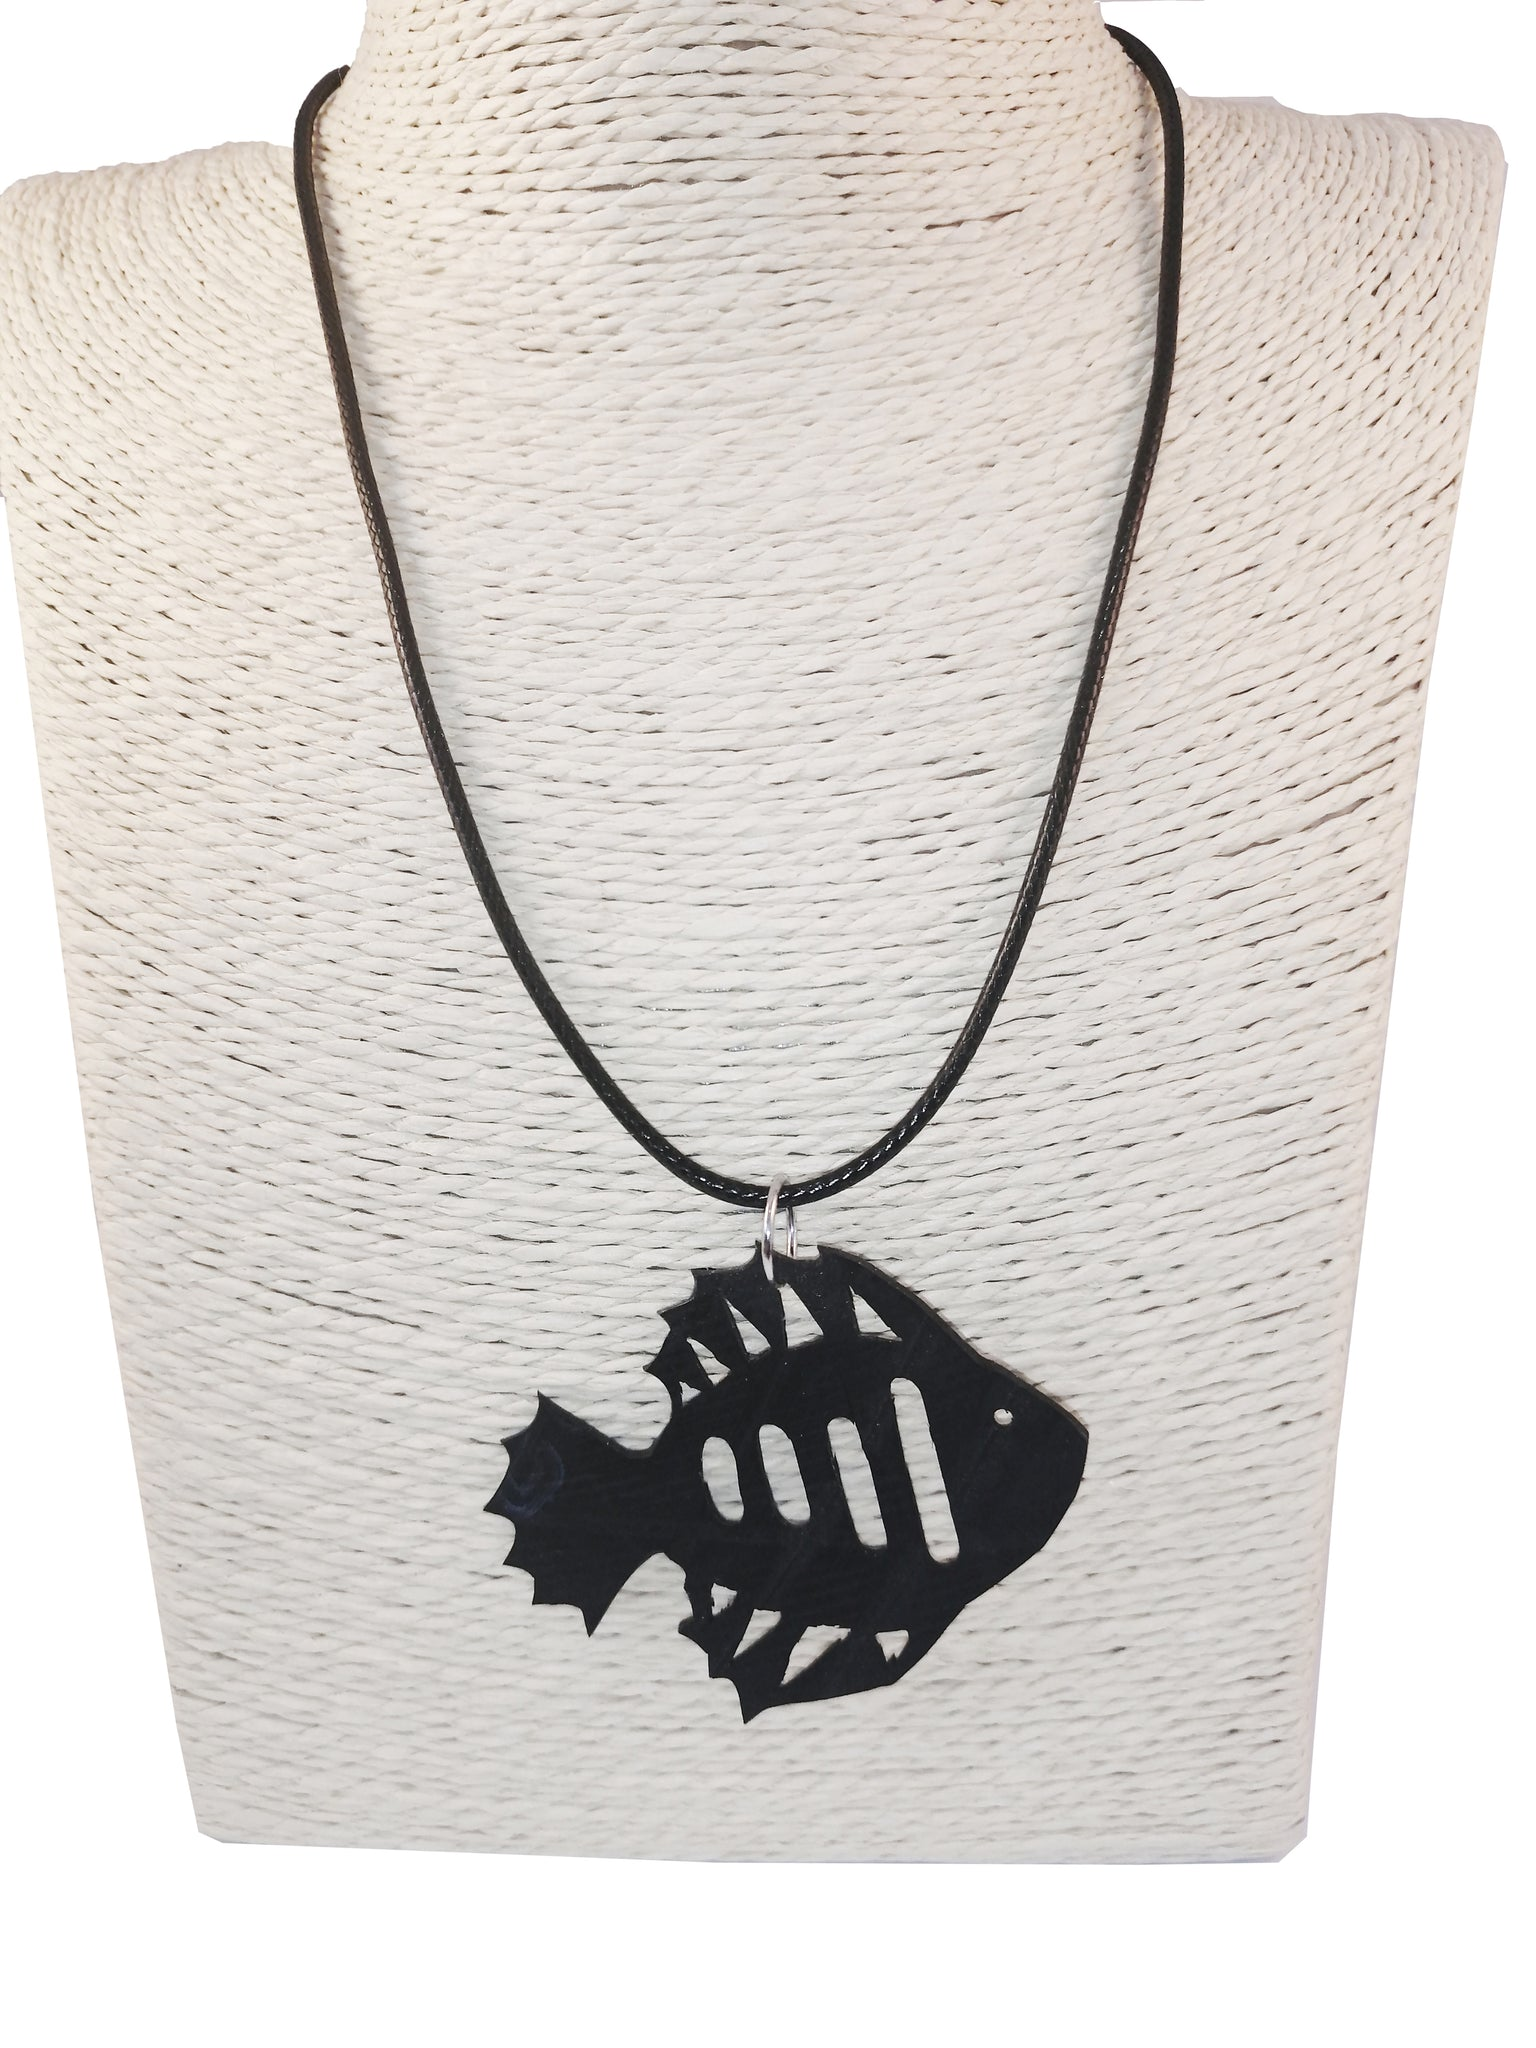 Banshy-fish necklace-fish inner tube pendant-jewelry upcycled-accesories from the sea- bijoux recyclé- bijou de la mer-diving world-dive wear-dive accesories - sea brand- vêtement inspiré de la mer-french brand